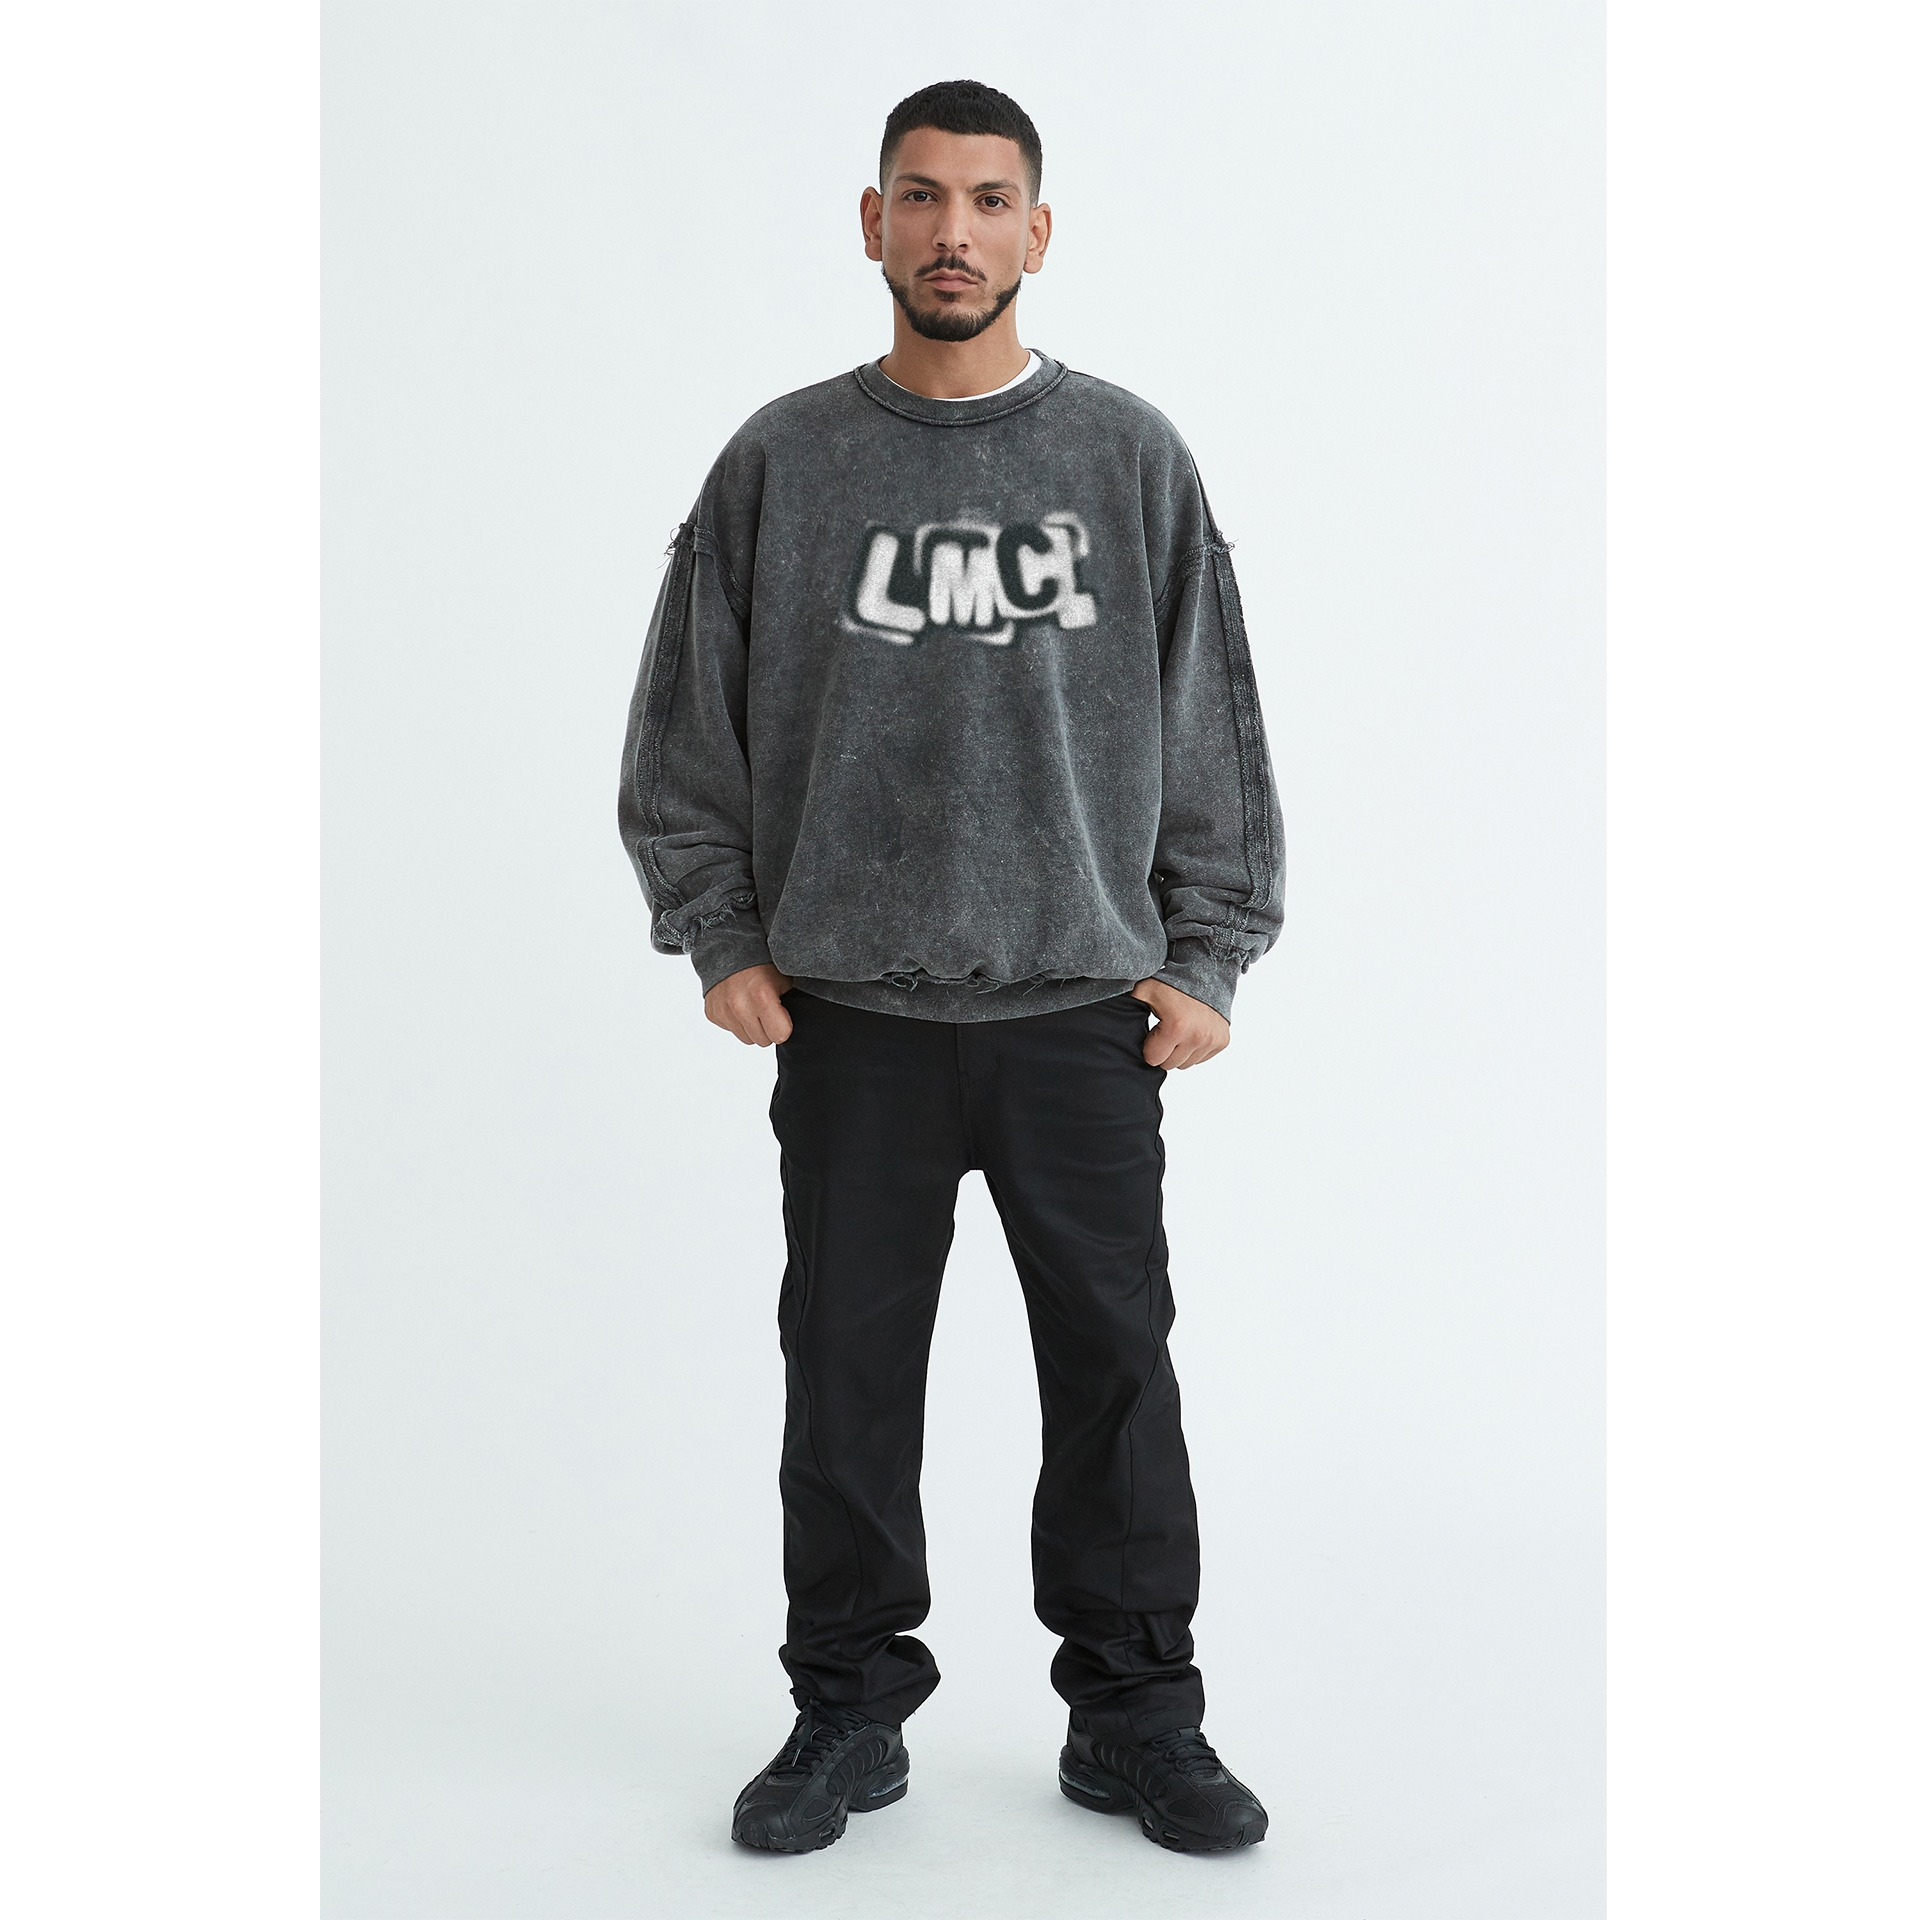 LMC ACID WASHED X-RAY OVERSIZED SWEATSHIRT charcoal